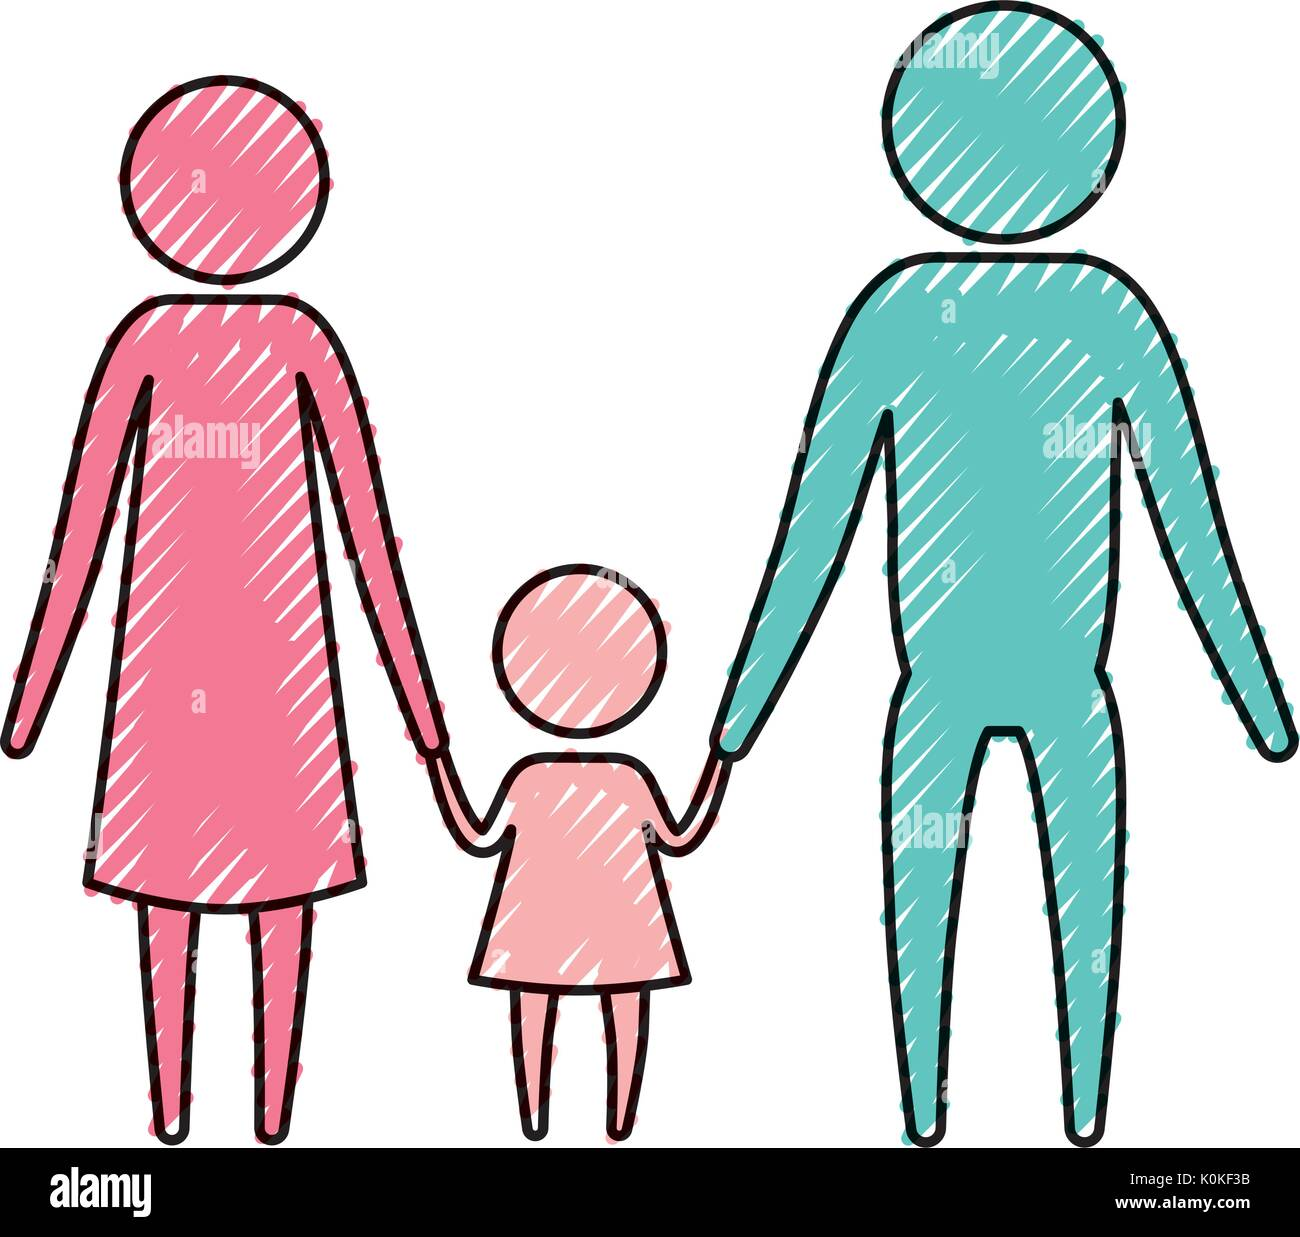 color crayon silhouette pictogram parents with a little girl holding hands - Stock Image